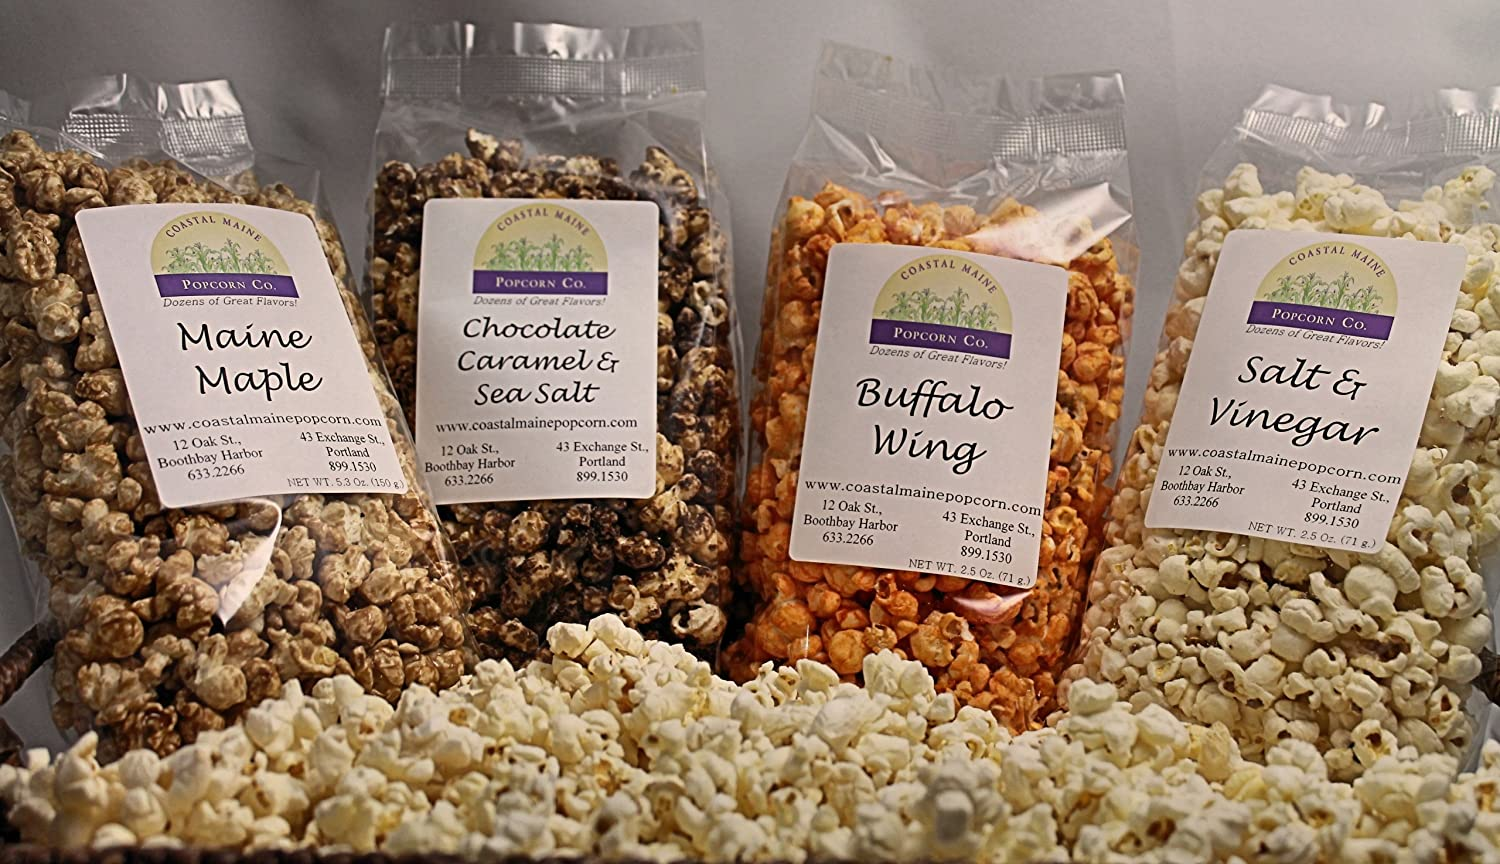 Coastal Maine Popcorn - Maine Maple, Salt & Vinegar, Buffalo Wing,  Chocolate Caramel Sea